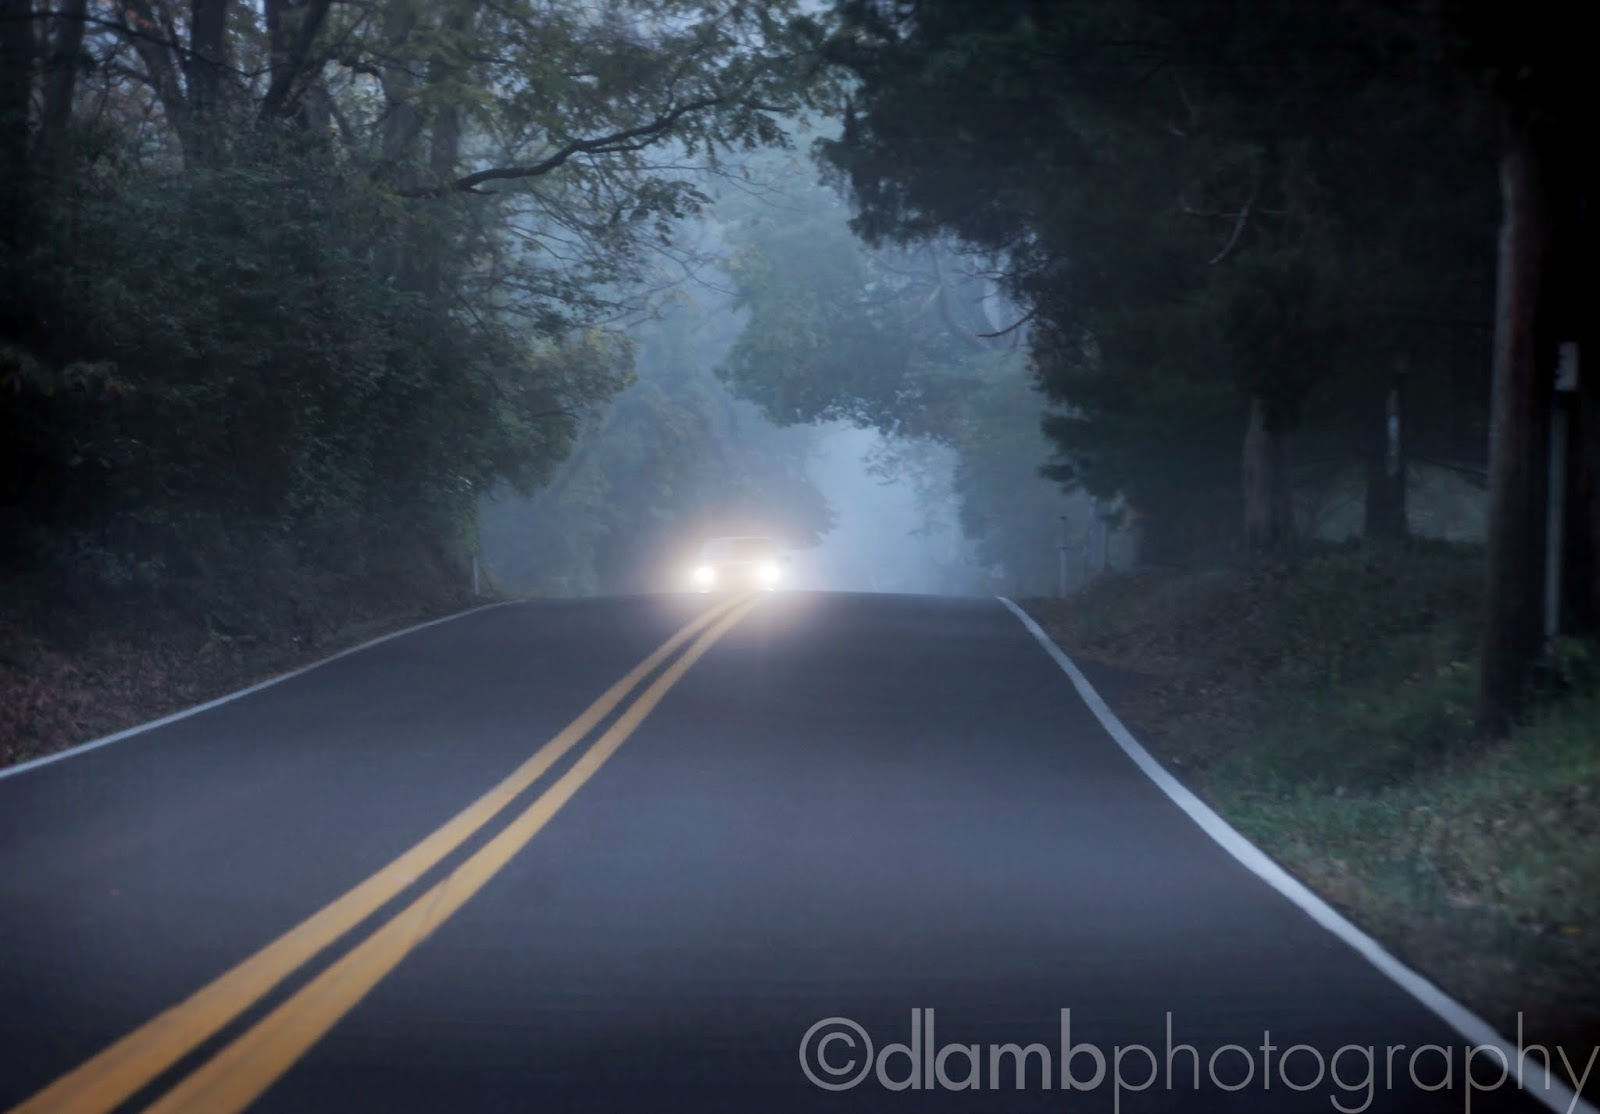 http://david-lamb.artistwebsites.com/featured/foggy-morning-drive-david-lamb.html